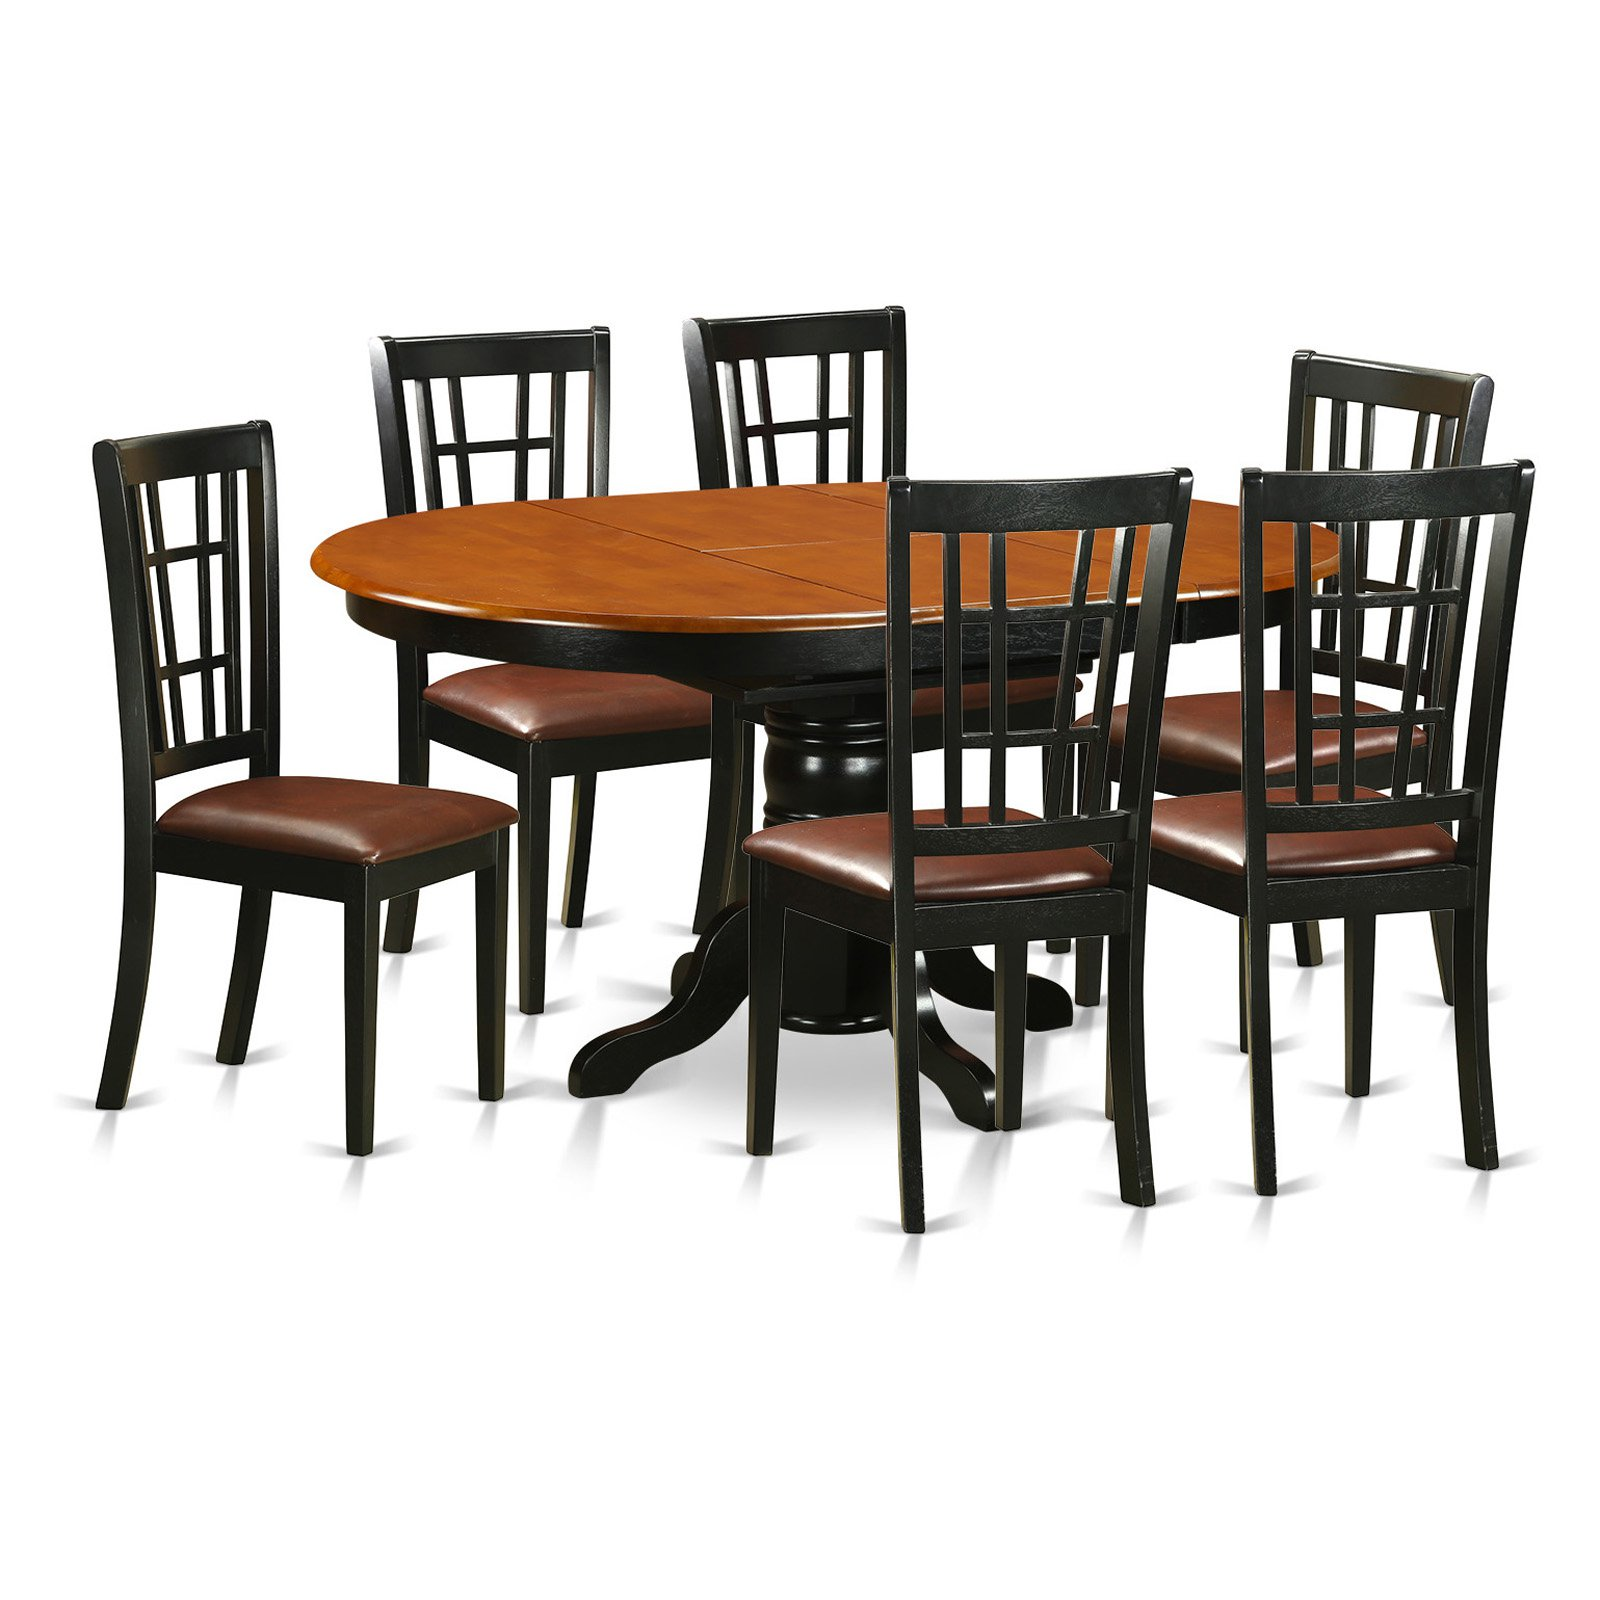 East West Furniture Avon 7 Piece Oval Pedestal Dining Table Set with...